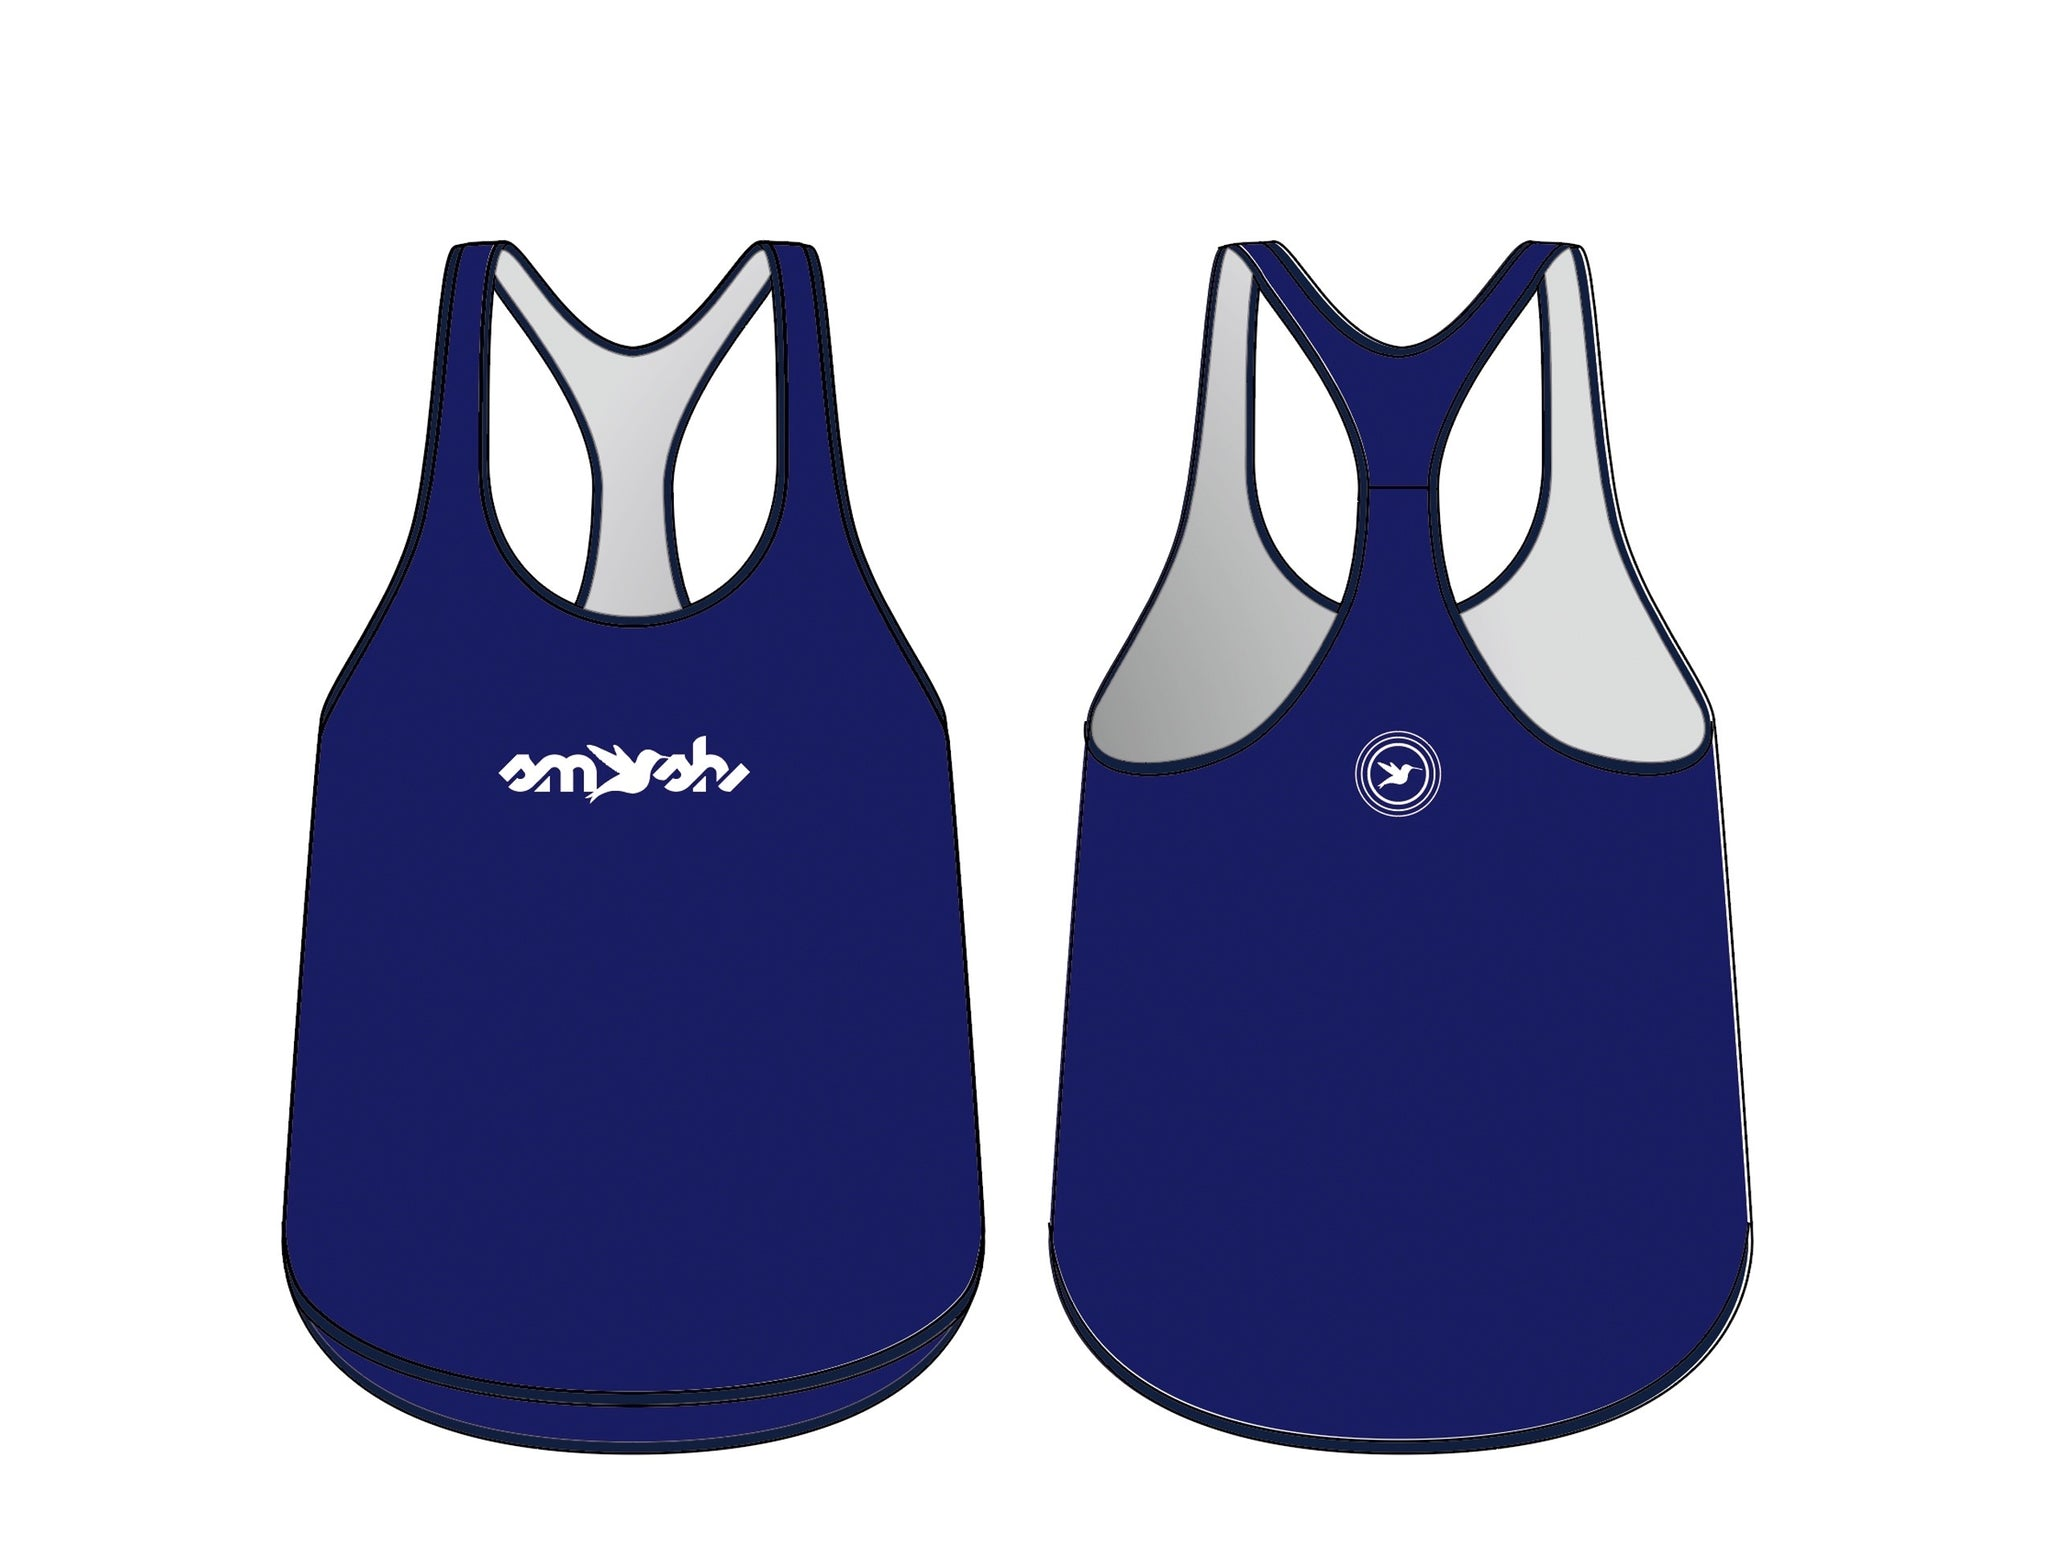 Graffiti Blue Women's Running Singlet Pre-order